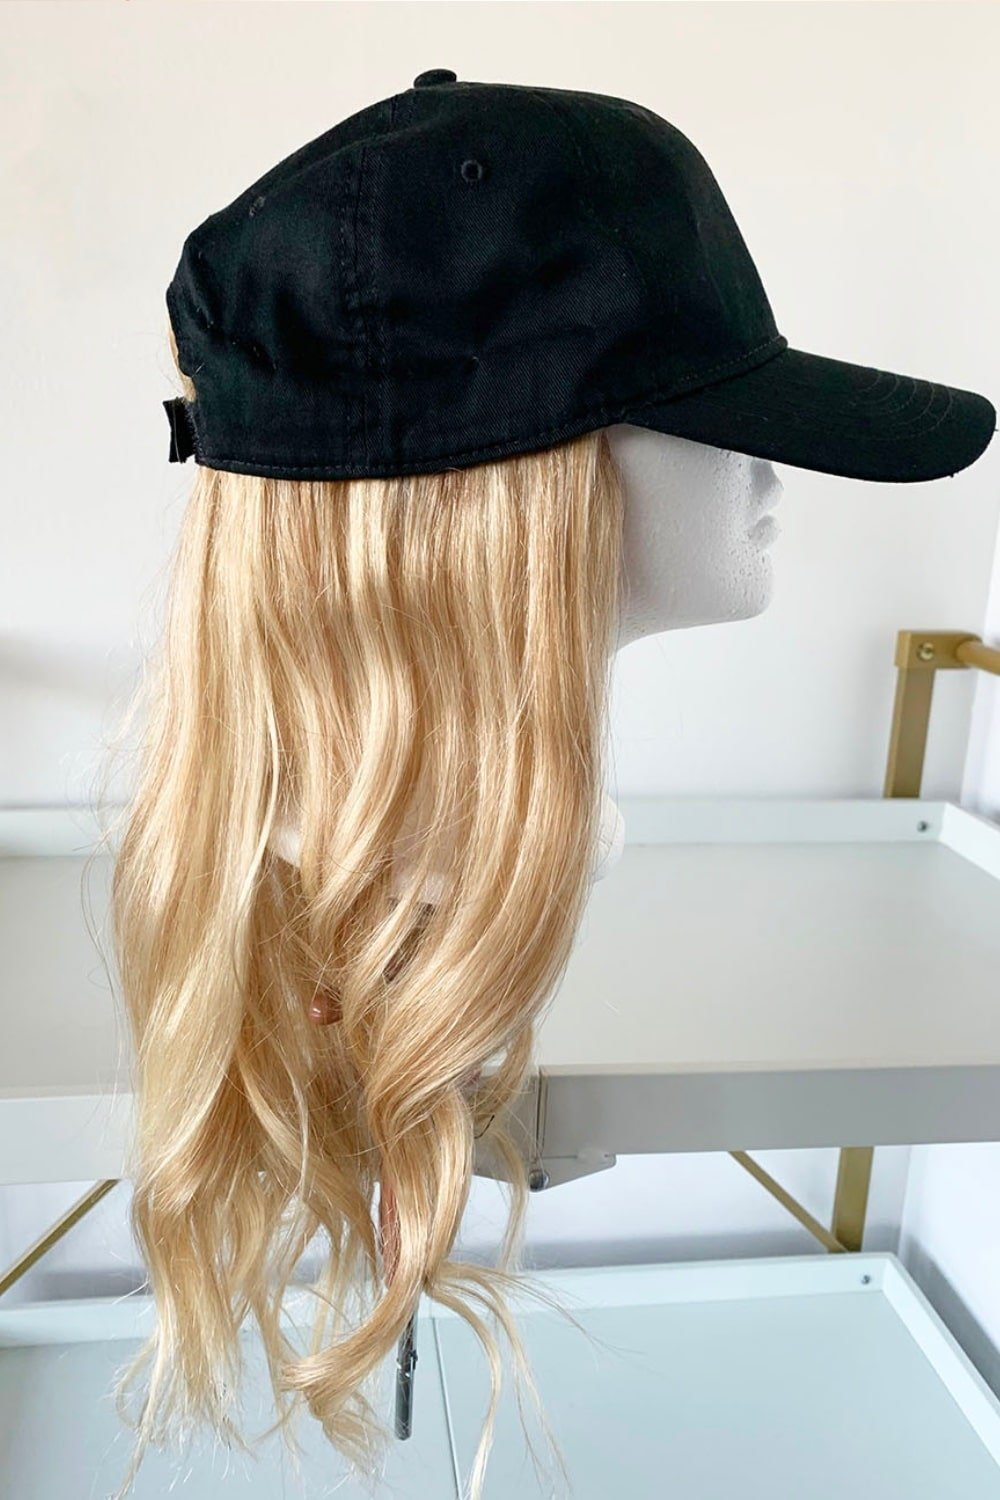 How to Make a DIY Wig Hat 31